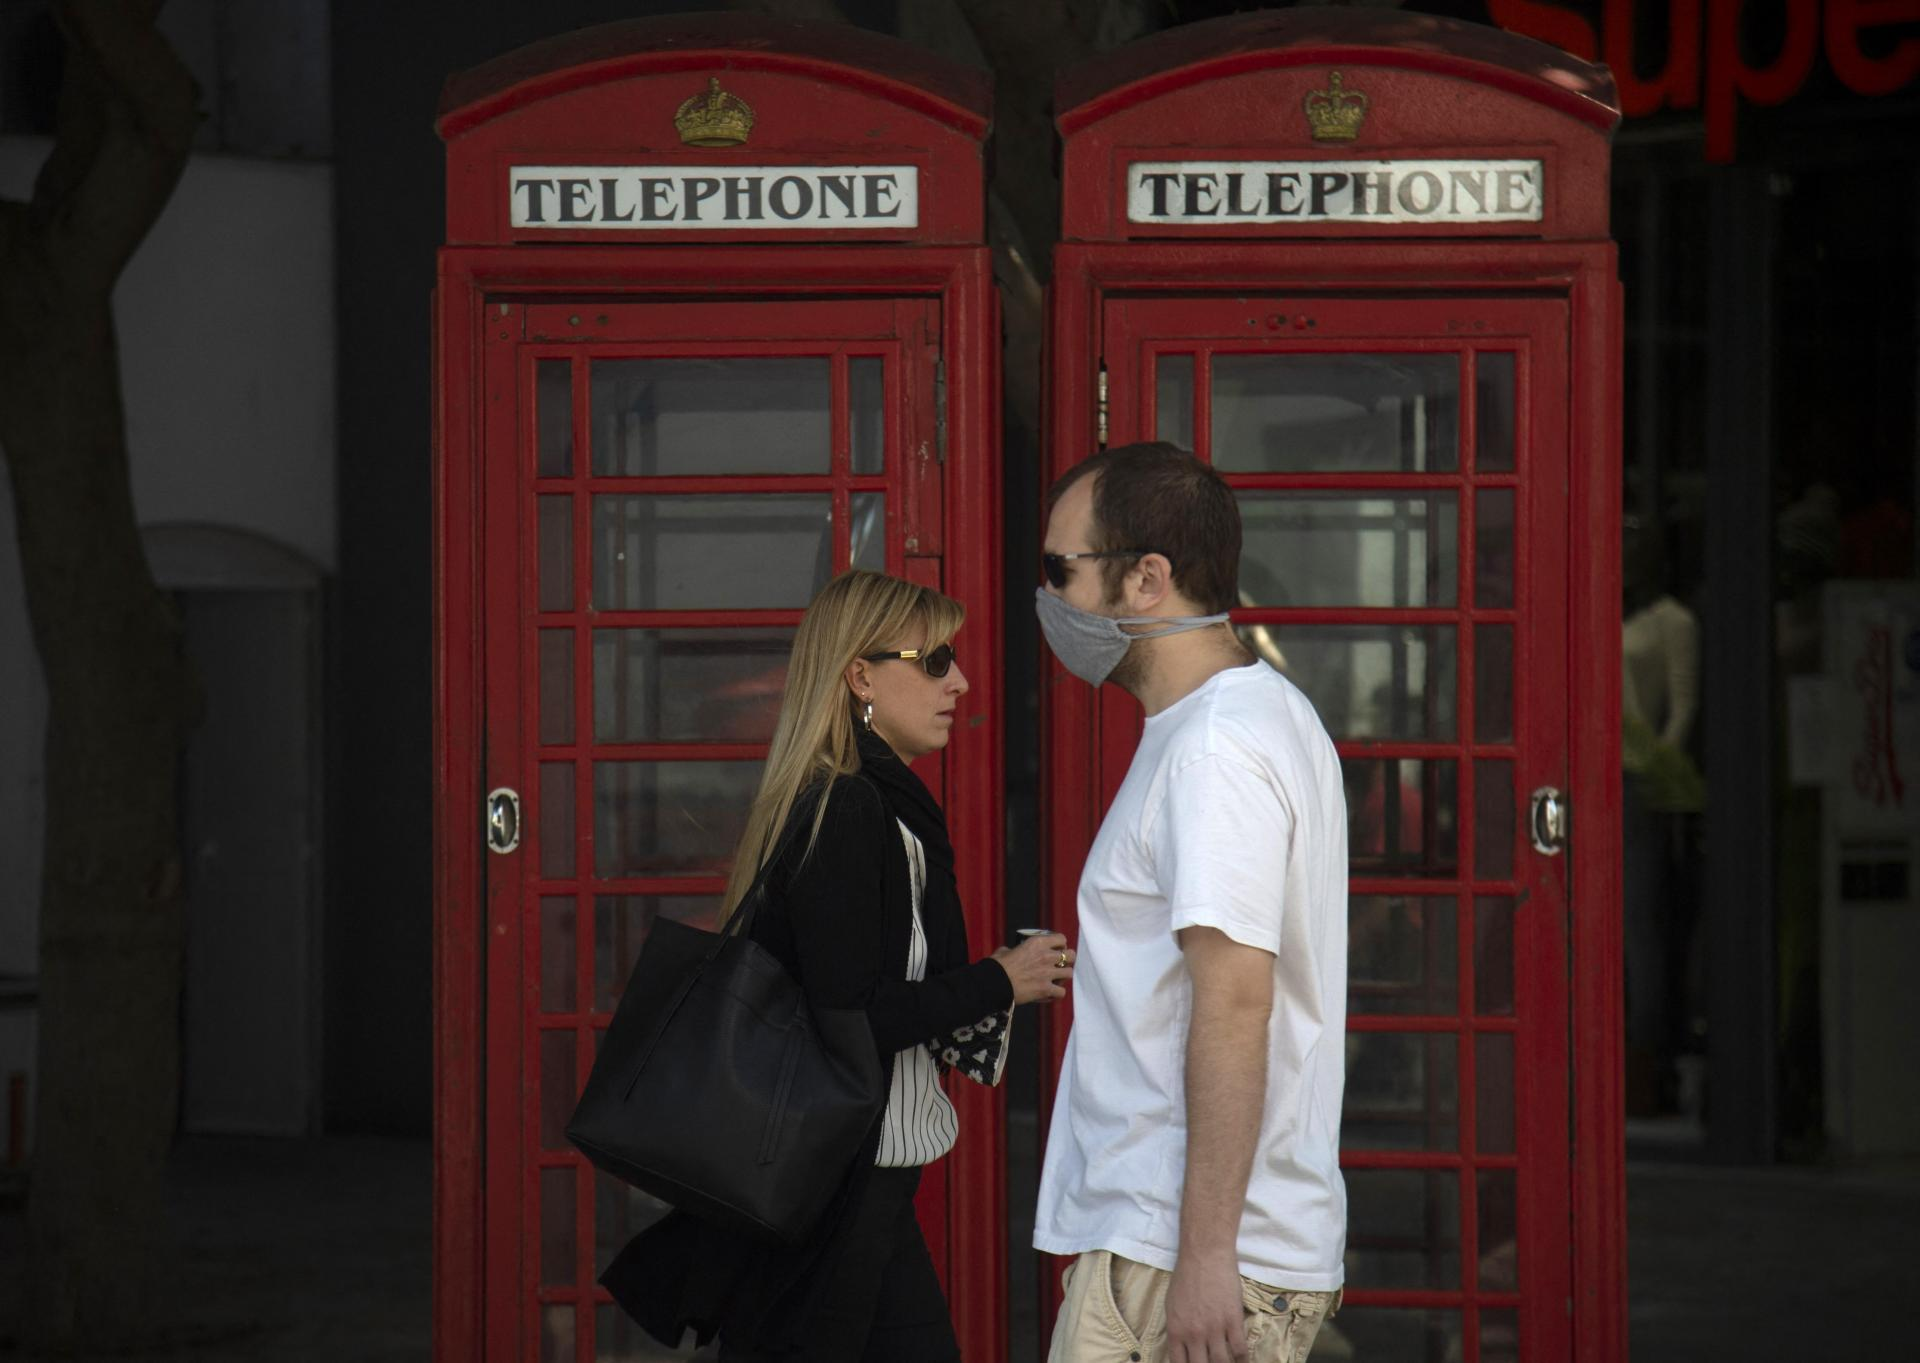 Two people walk past red telephone boxes in Gibraltar.